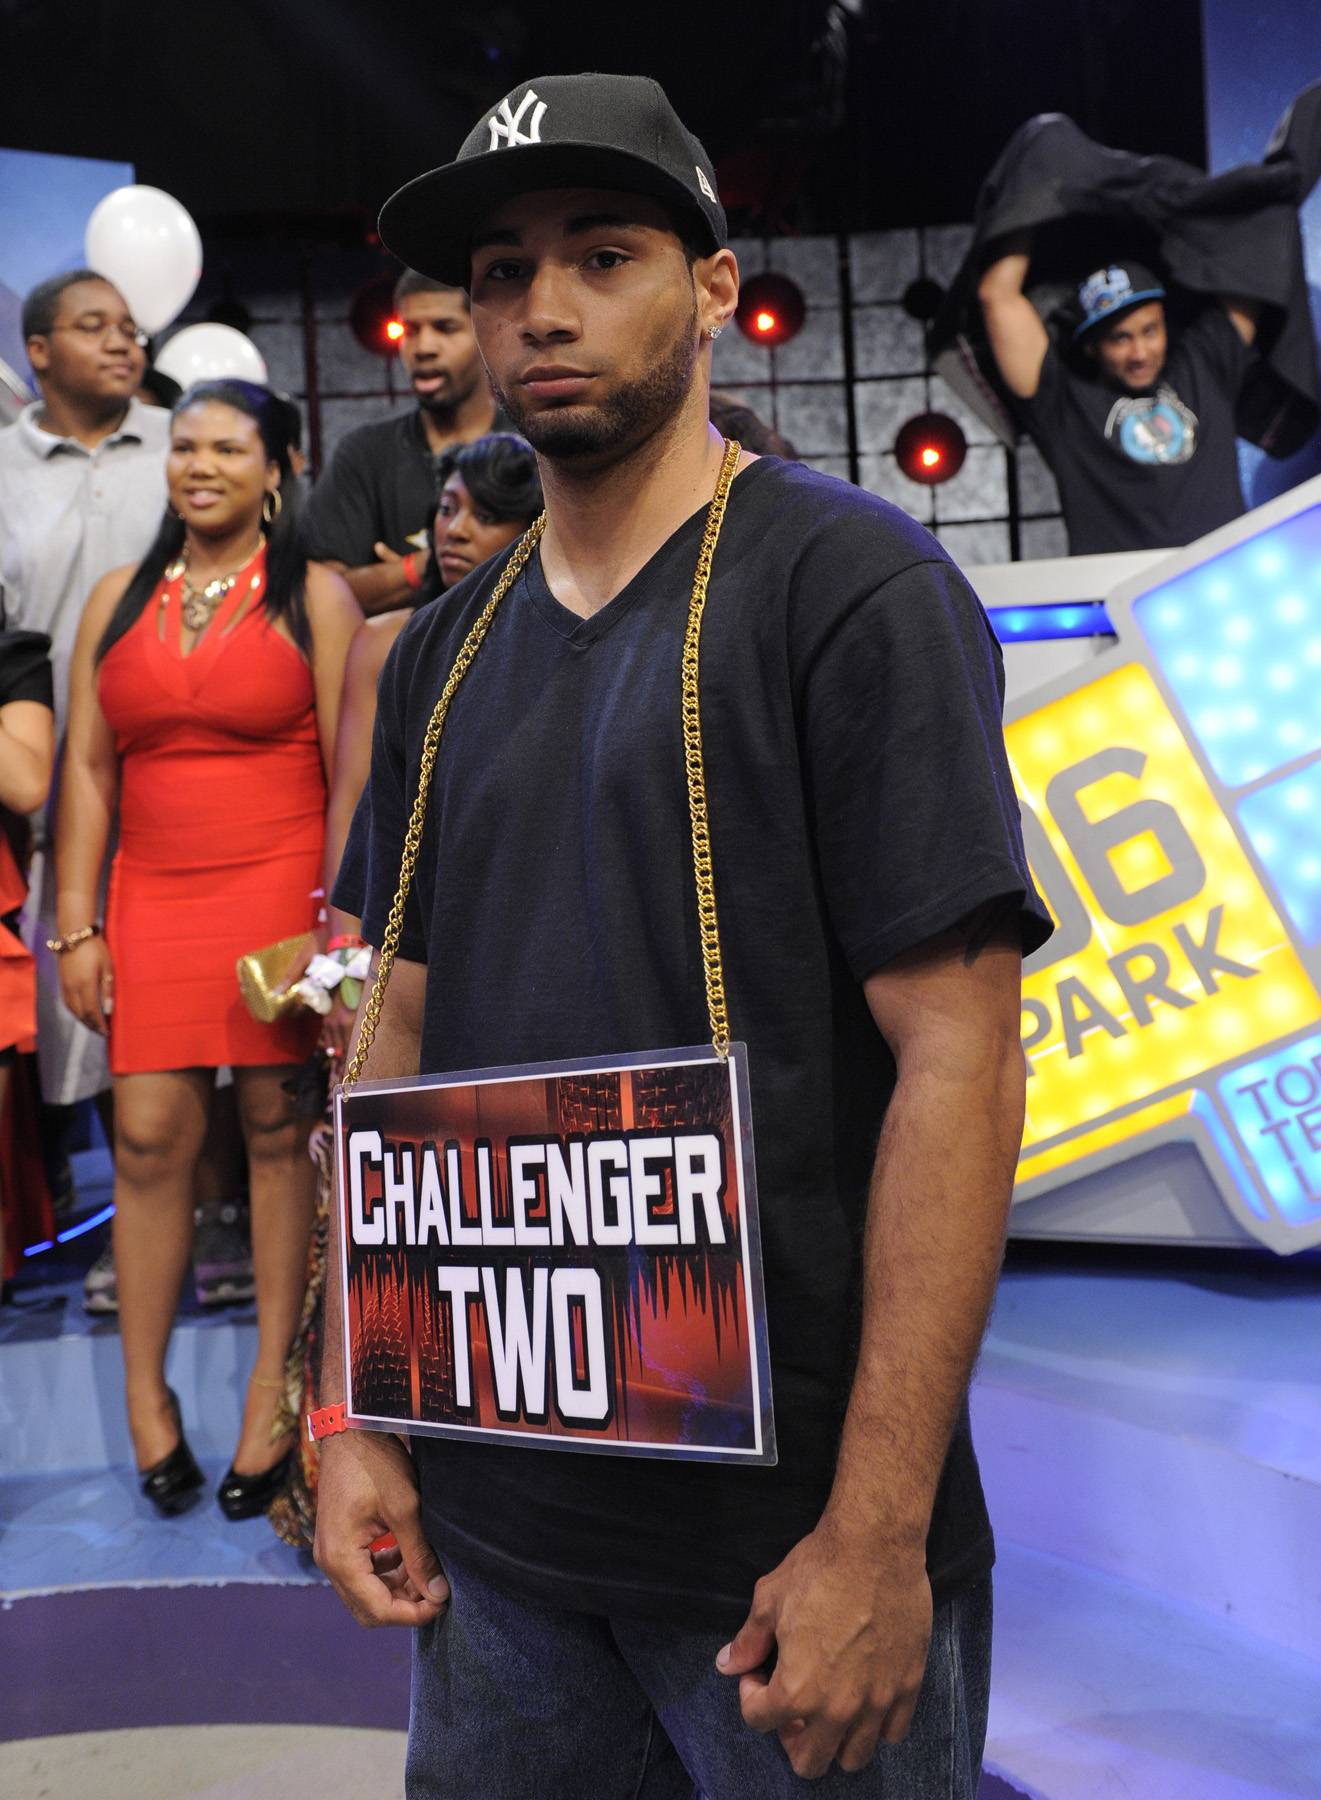 Oh Wee - Freestyle Friday contestants Jayo the Beatslayer at 106 & Park, May 25, 2012. (Photo: John Ricard / BET)